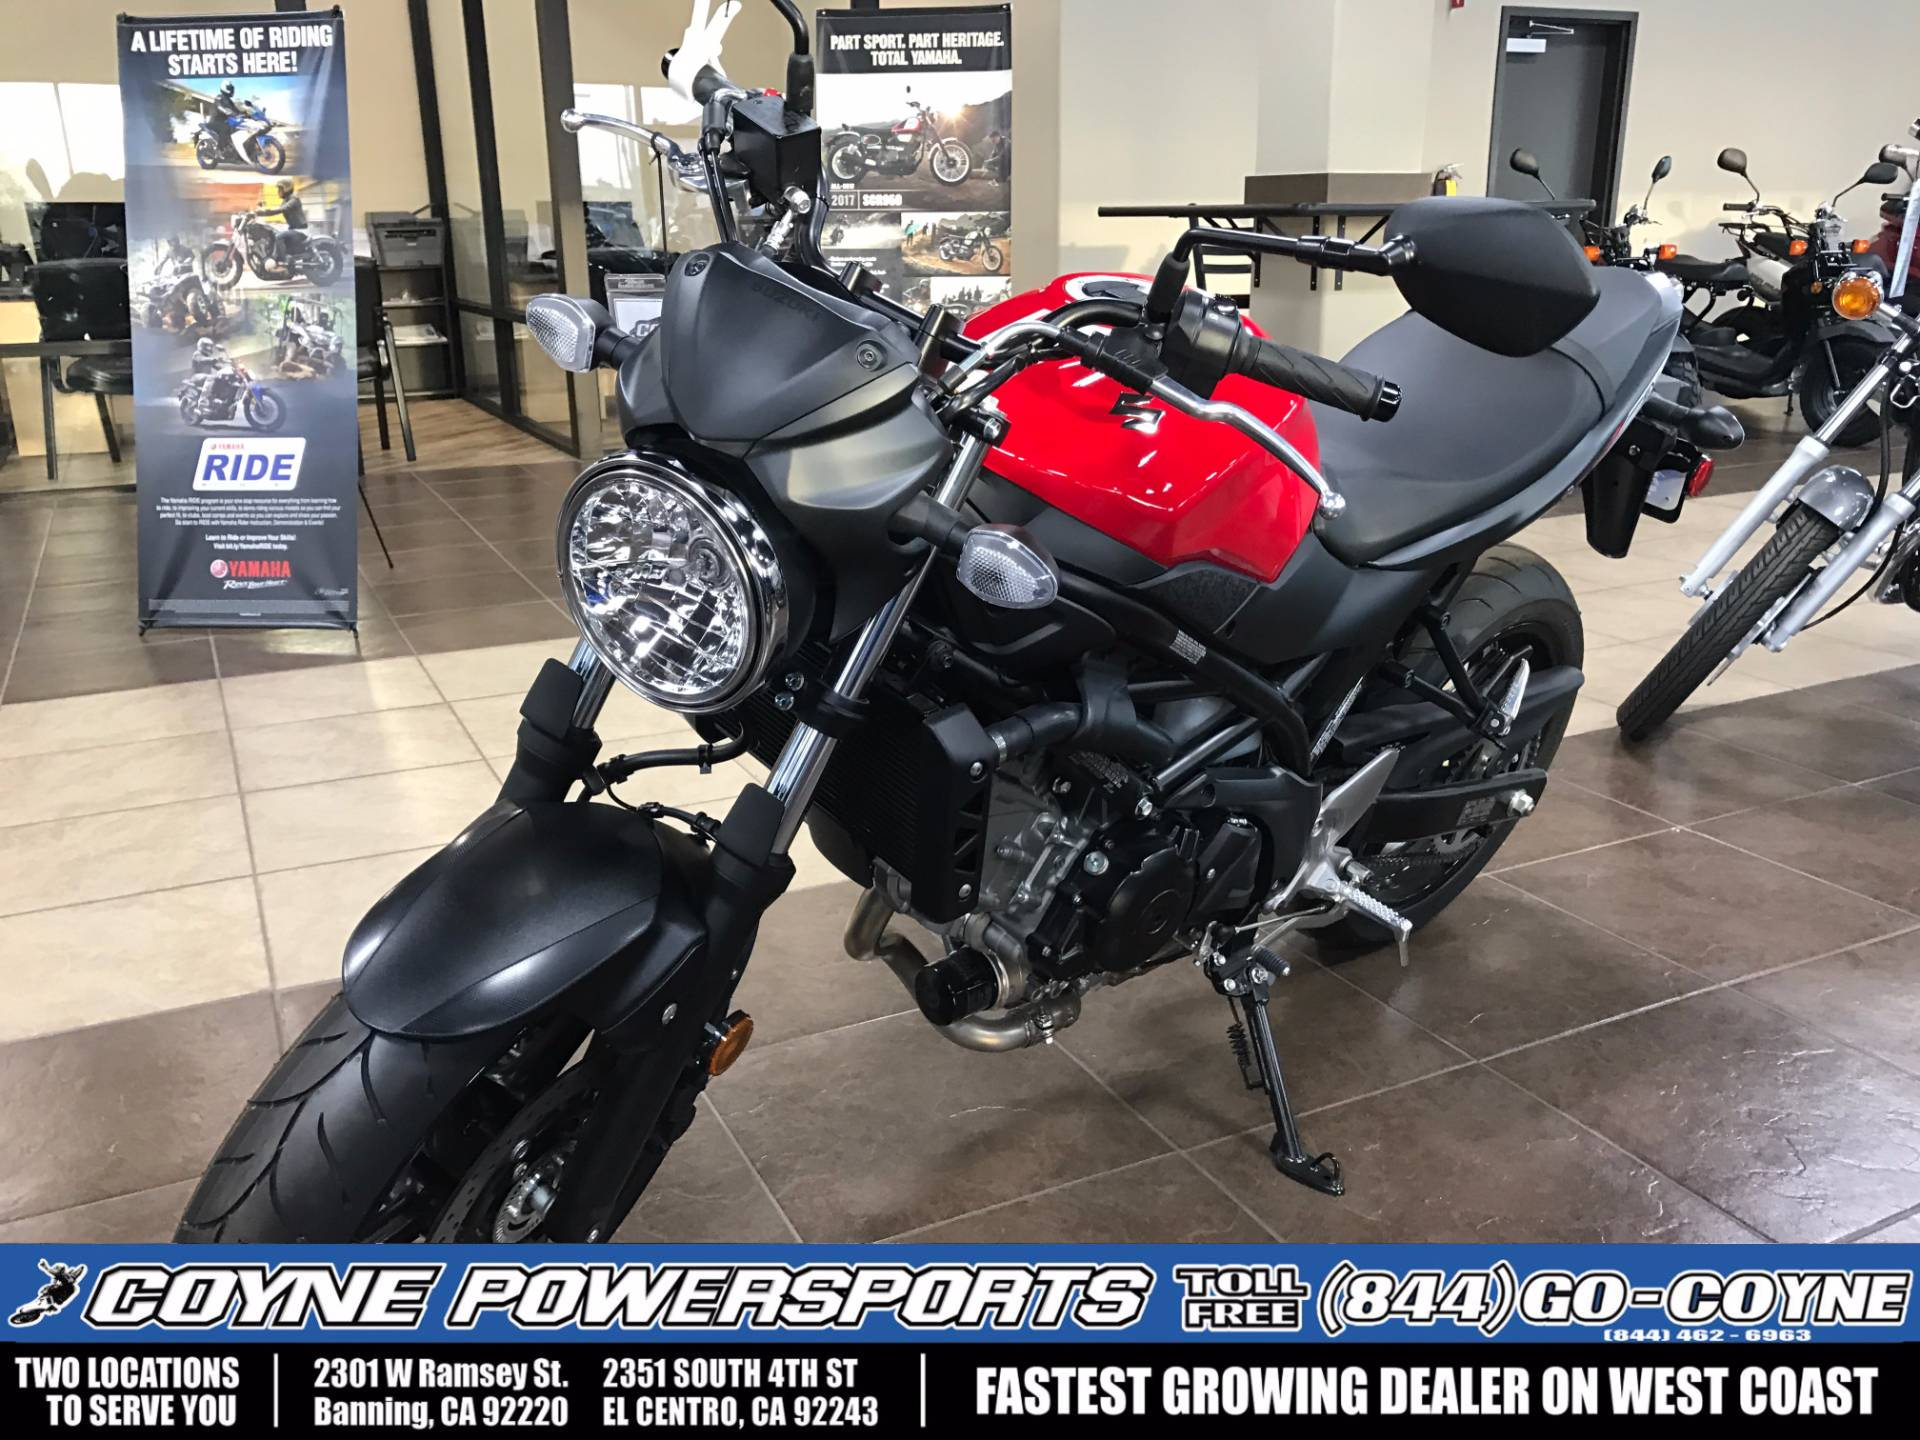 2017 Suzuki SV650 for sale 23333